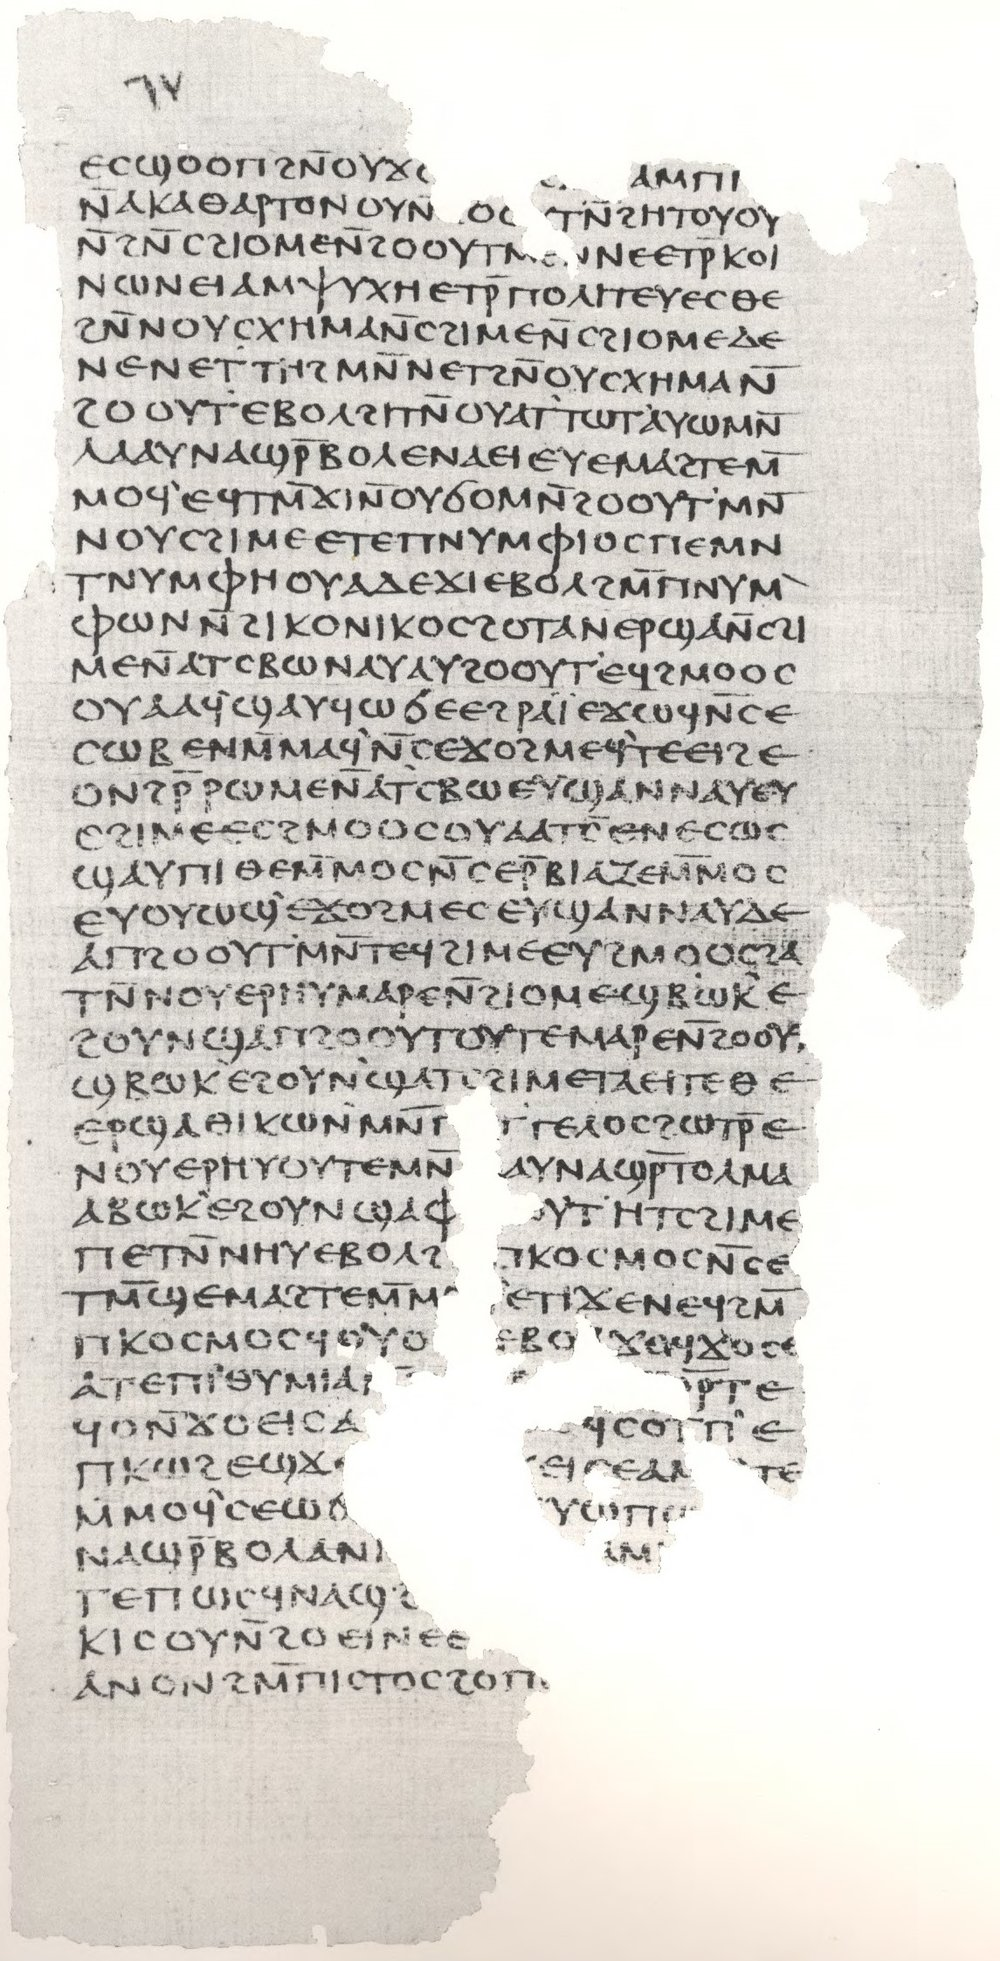 Gospel_of_Philip_facsimile_Page_65.jpg